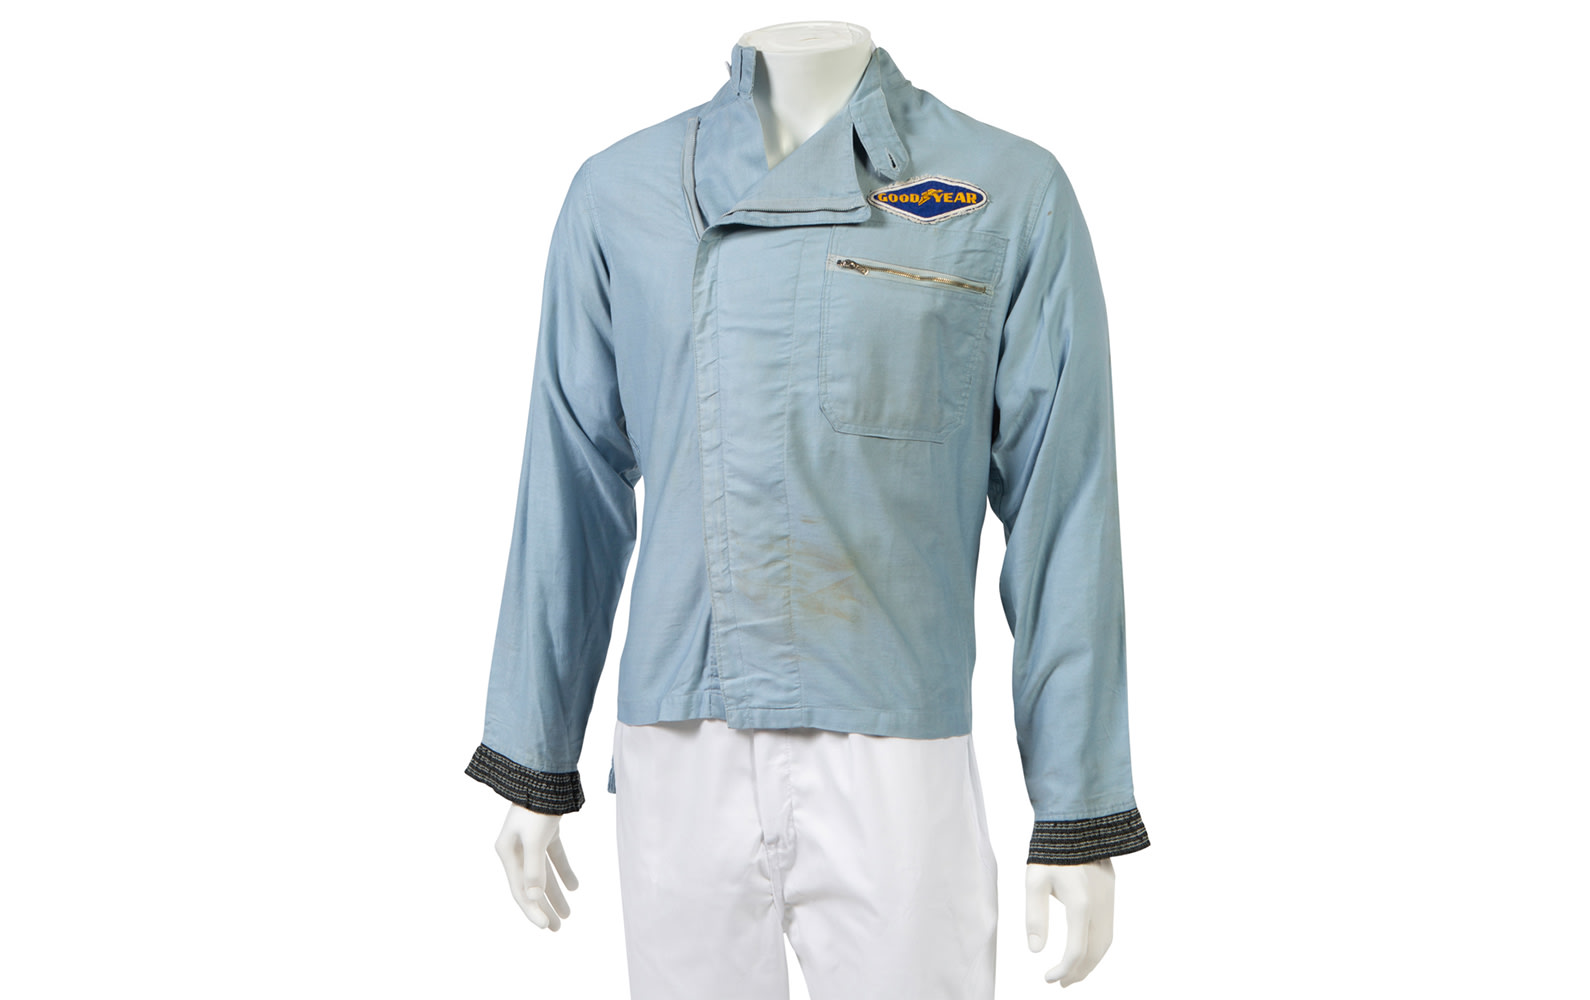 Les Leston Ltd. Driving Suit Top Worn by Phil Hill During His Time Driving GT40s for Shelby American